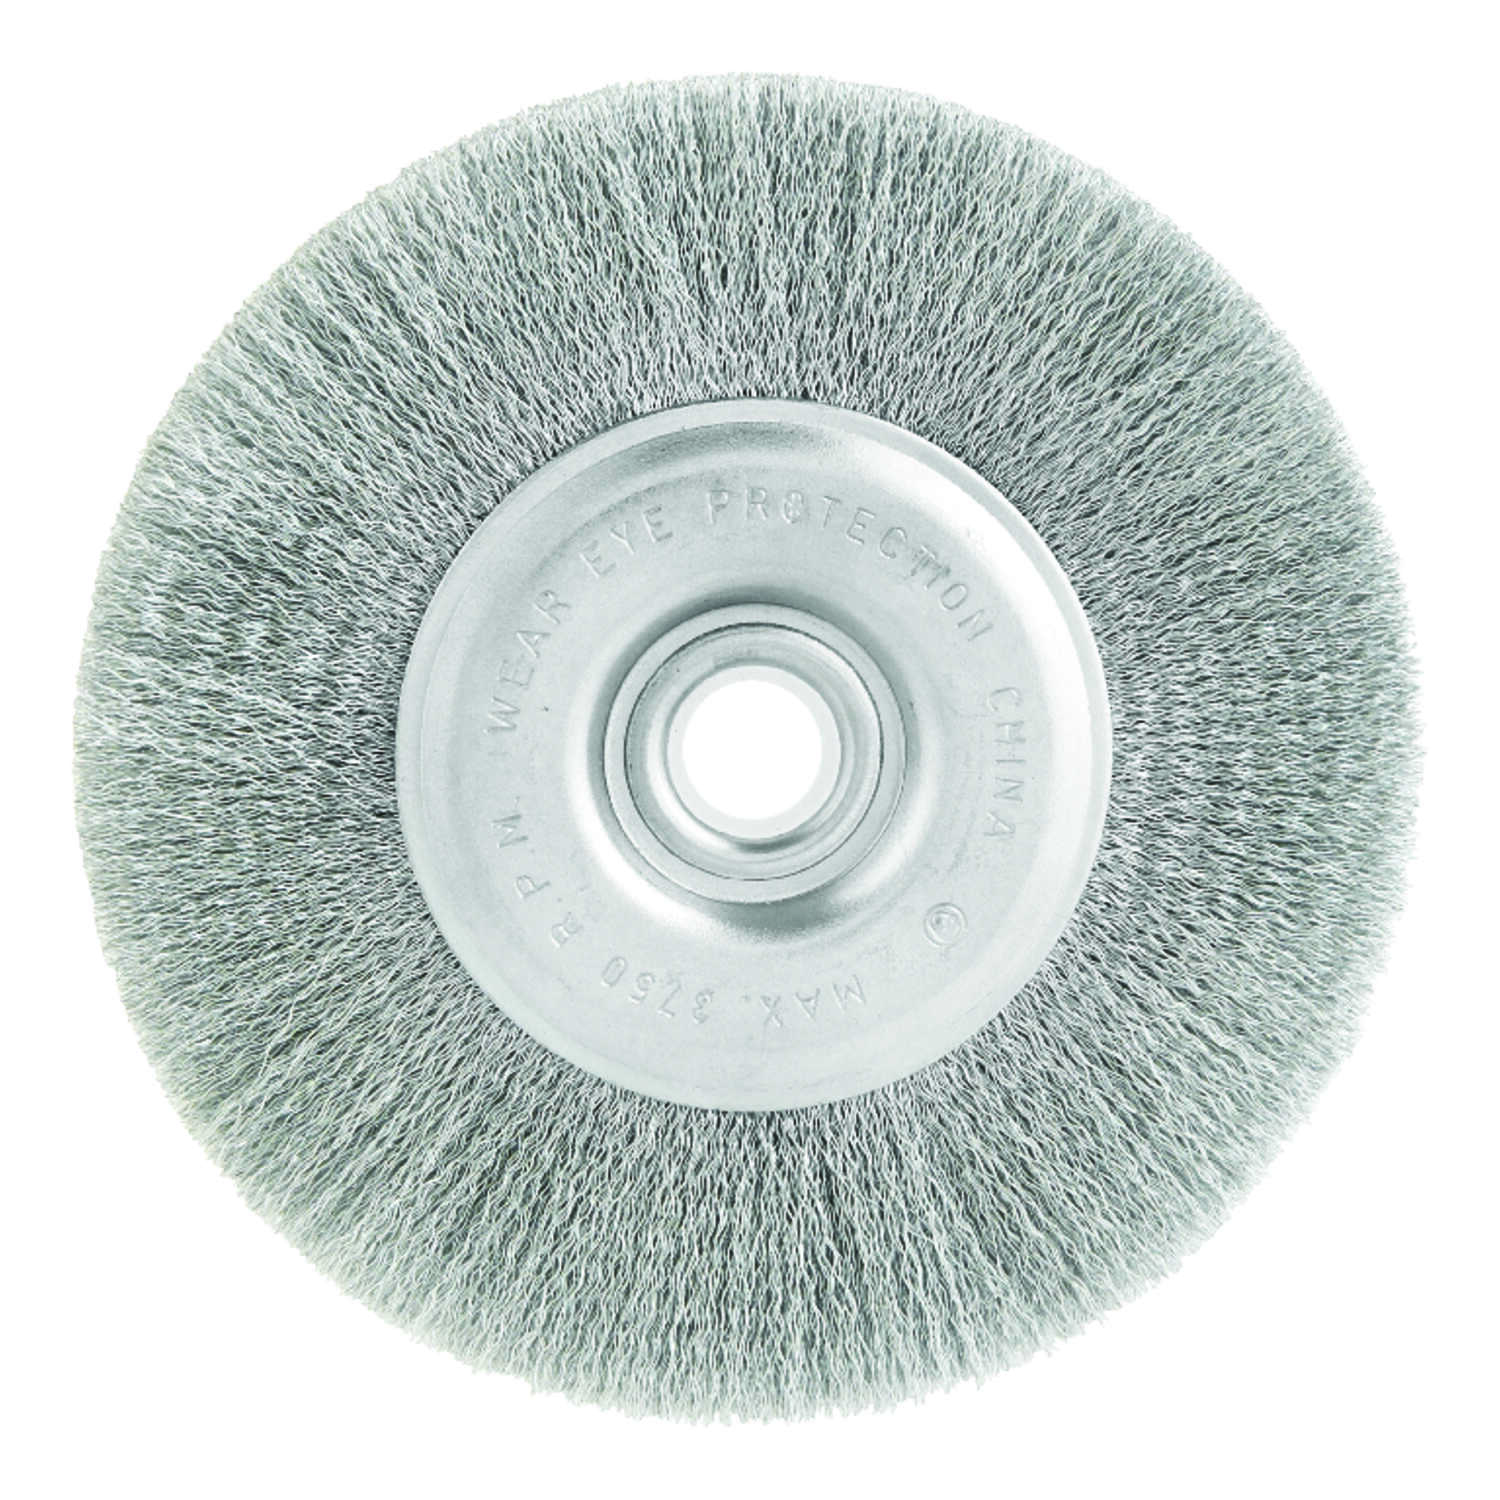 Ace  5 in. Fine  Crimped  Wire Wheel Brush  Steel  3750 rpm 1 pc.